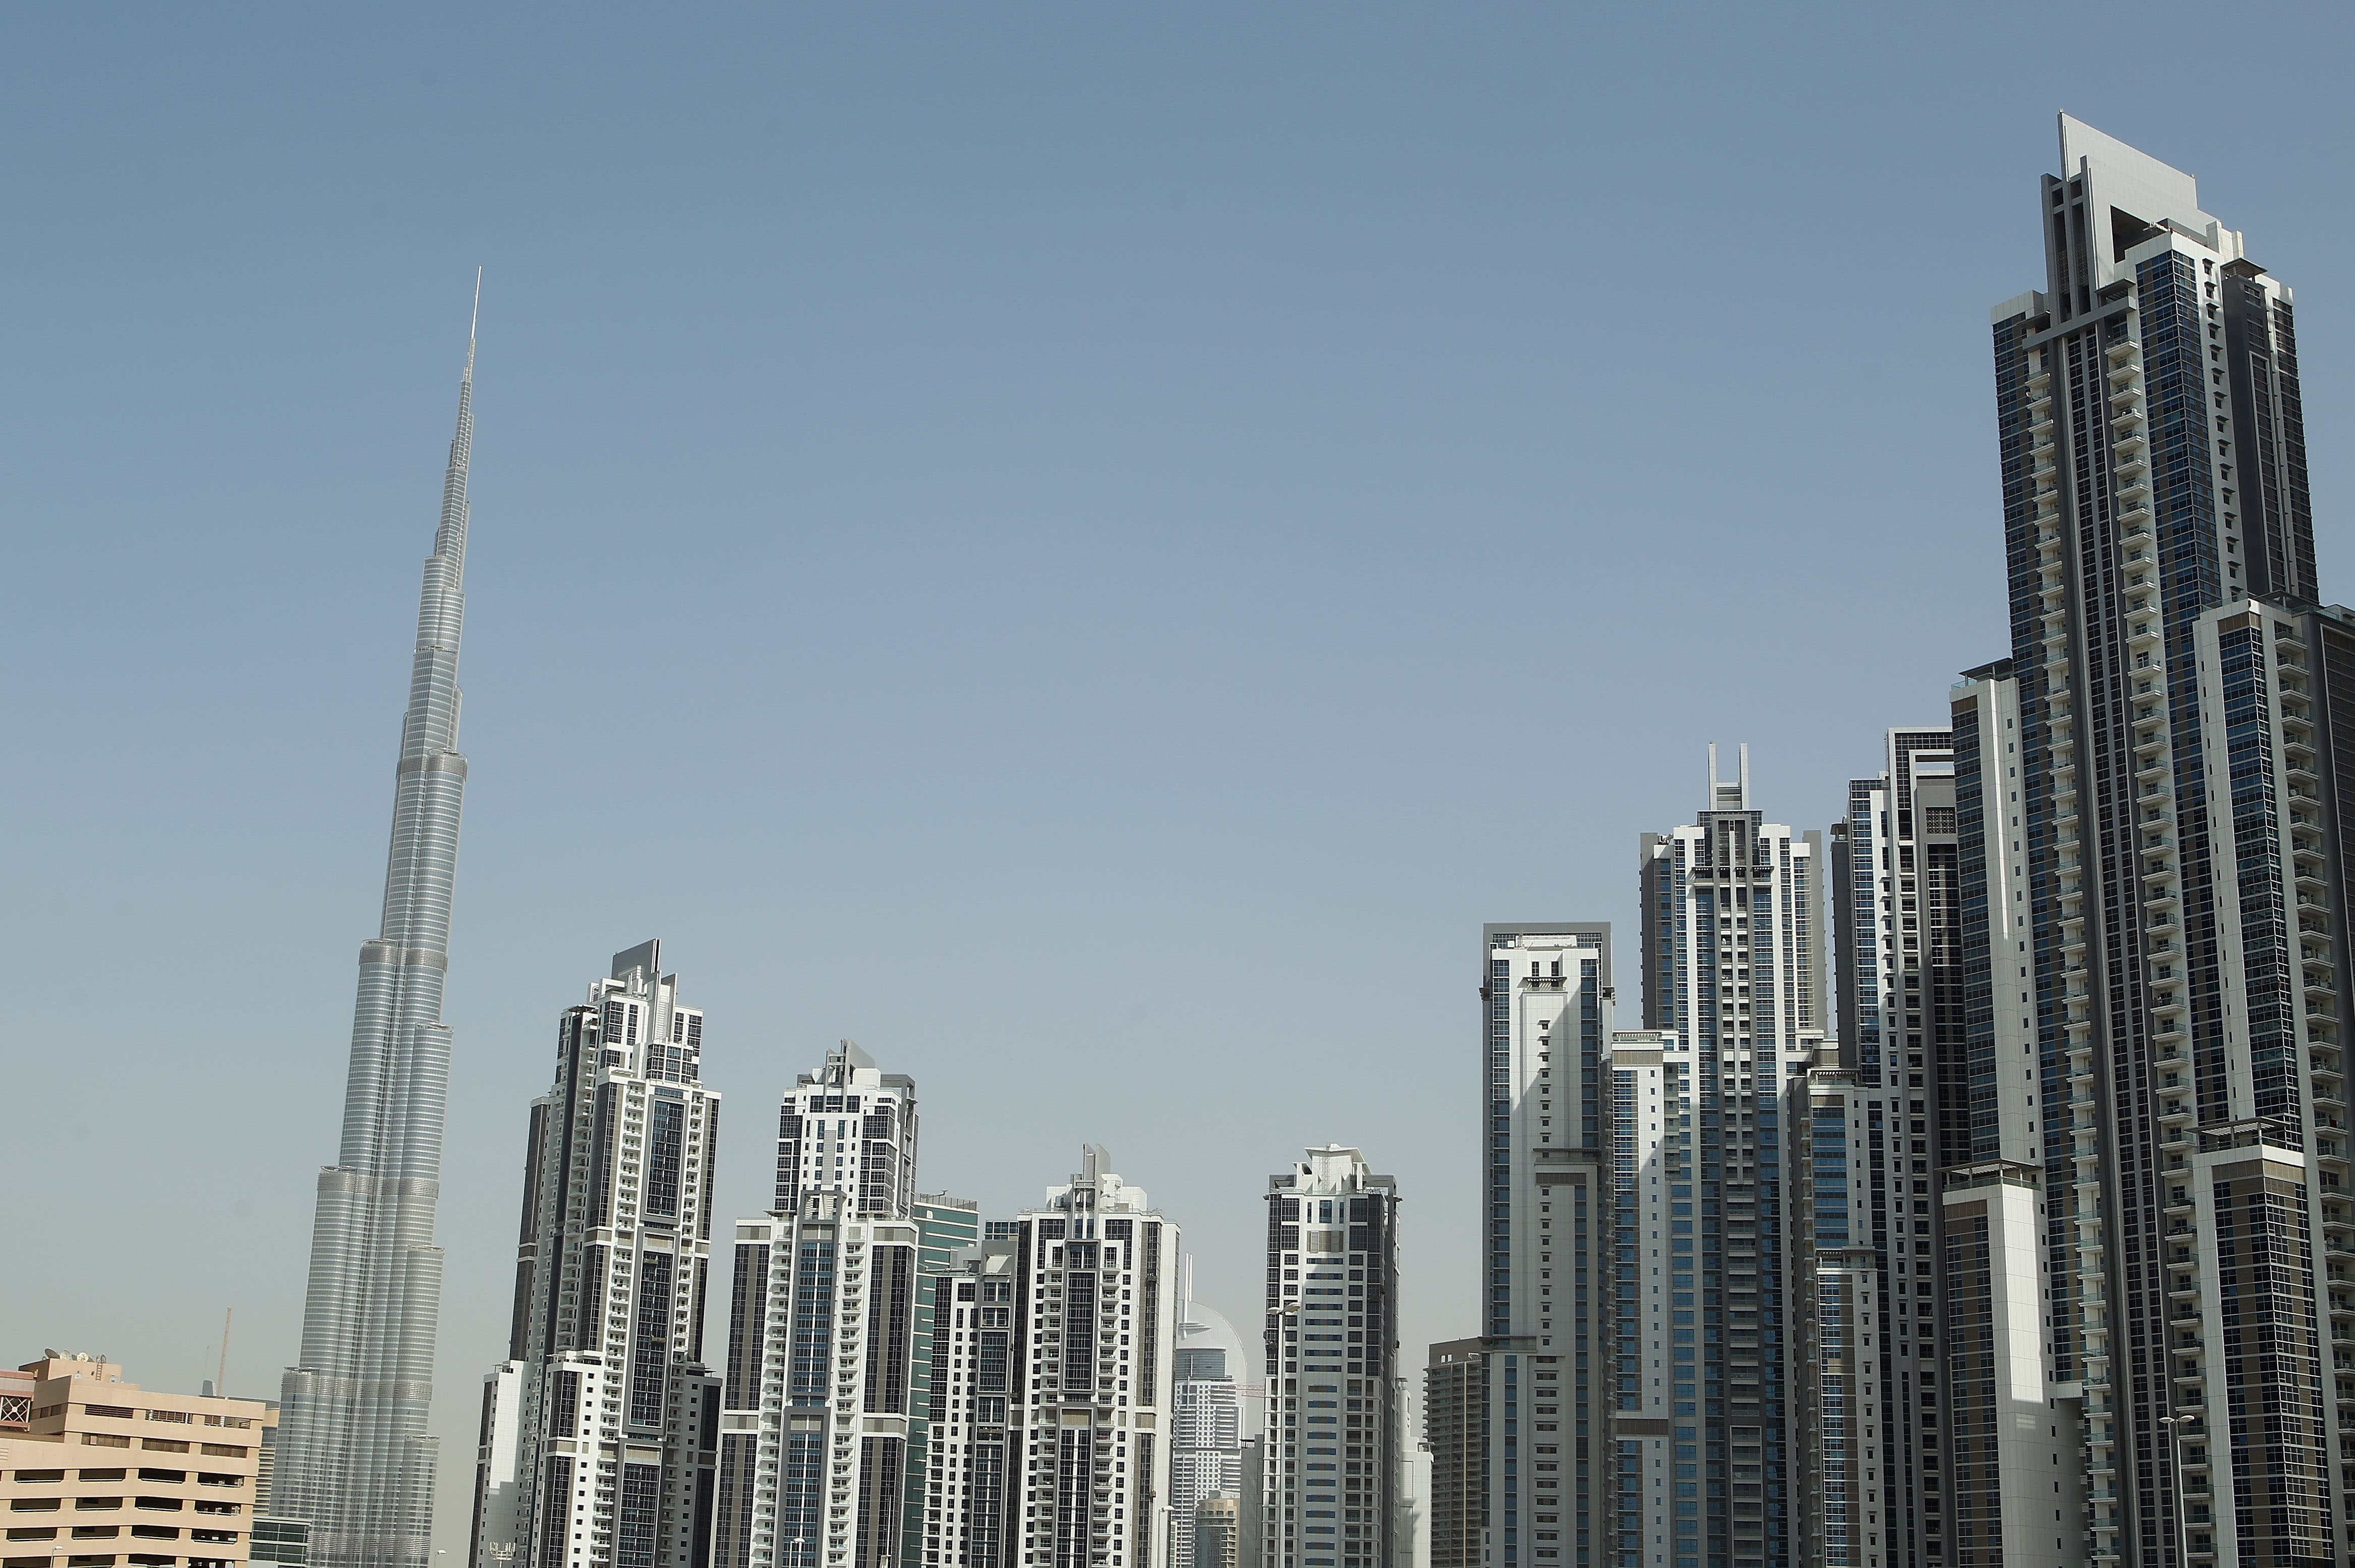 The man behind the worlds tallest building in Dubai is planning on going  even higher with a new construction in Asia